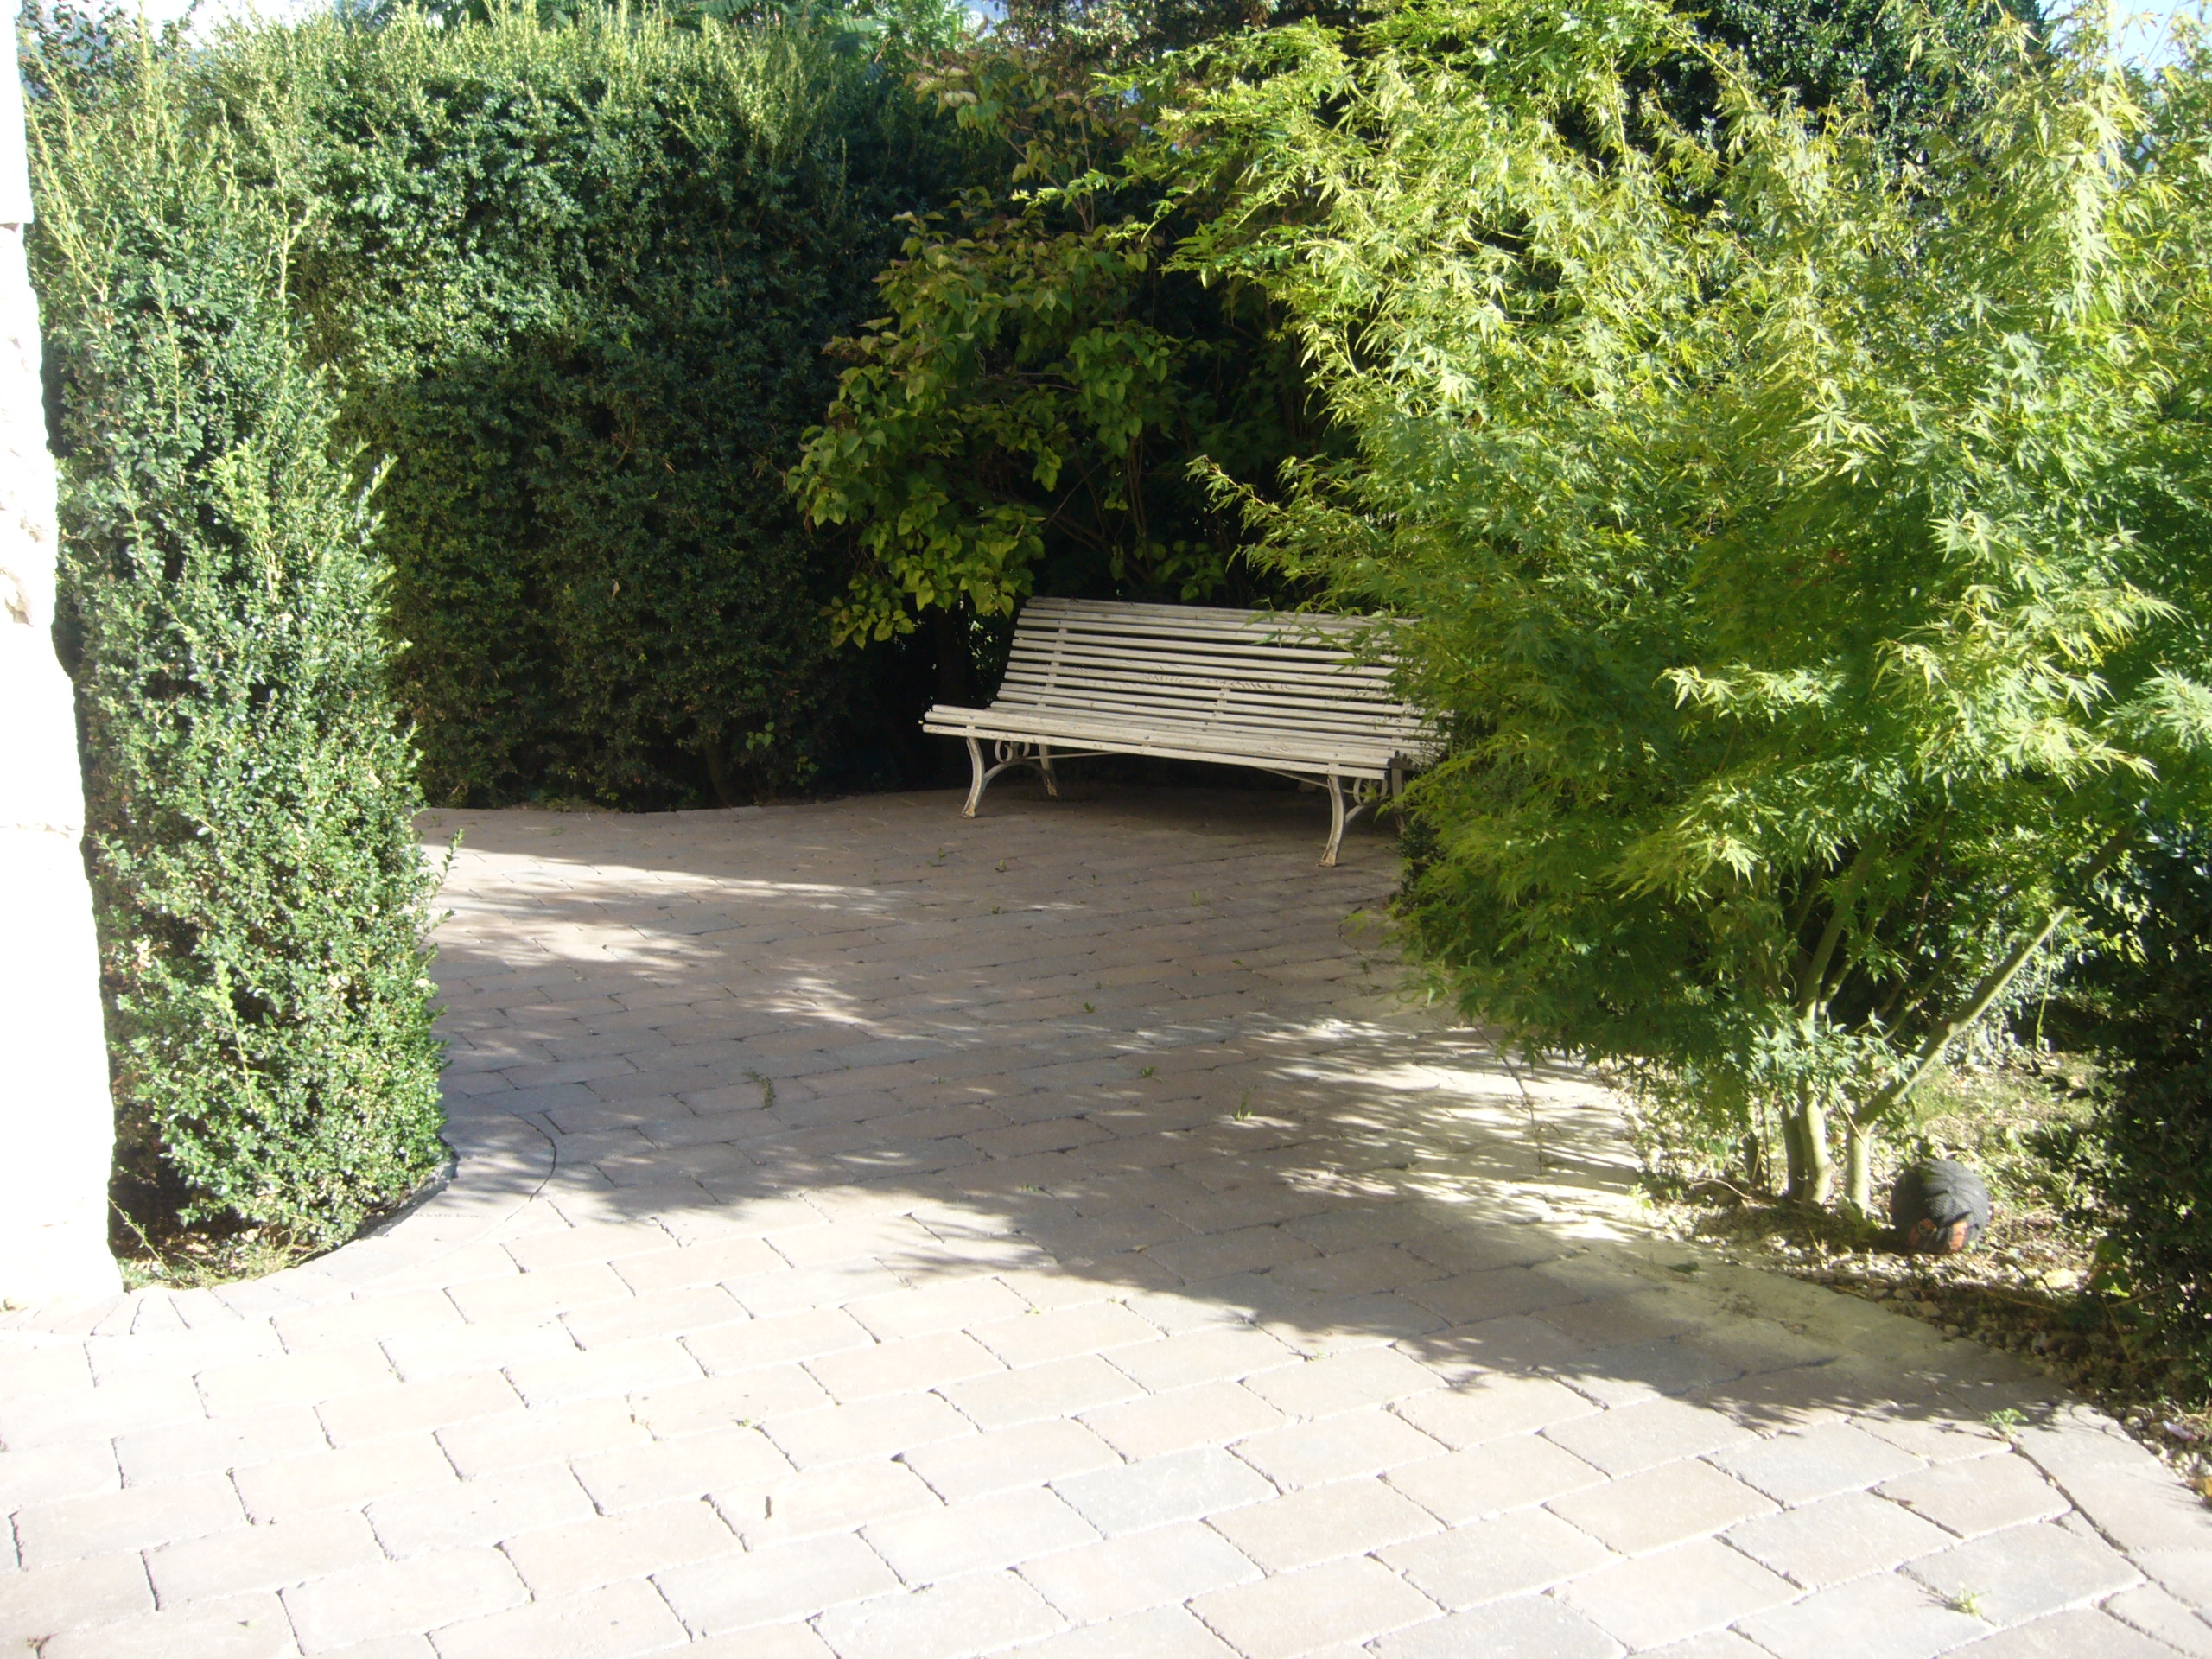 Espaces verts cosmos paysagecosmos paysage for Cout haie jardin